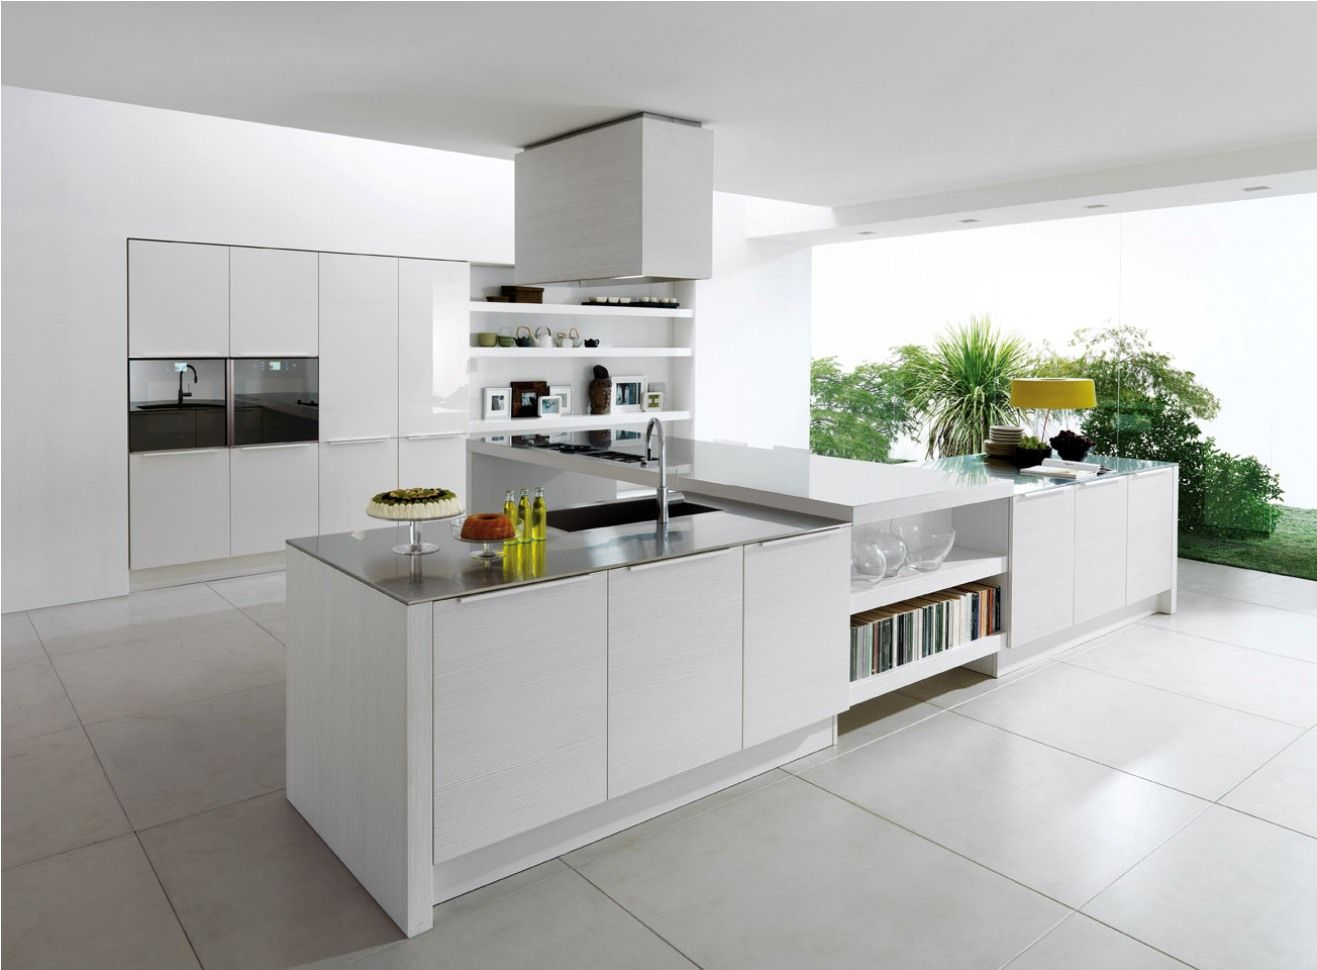 30 Contemporary White Kitchens Ideas  Modern Kitchen Designs Classy Interior Design Kitchen Ideas Design Decoration